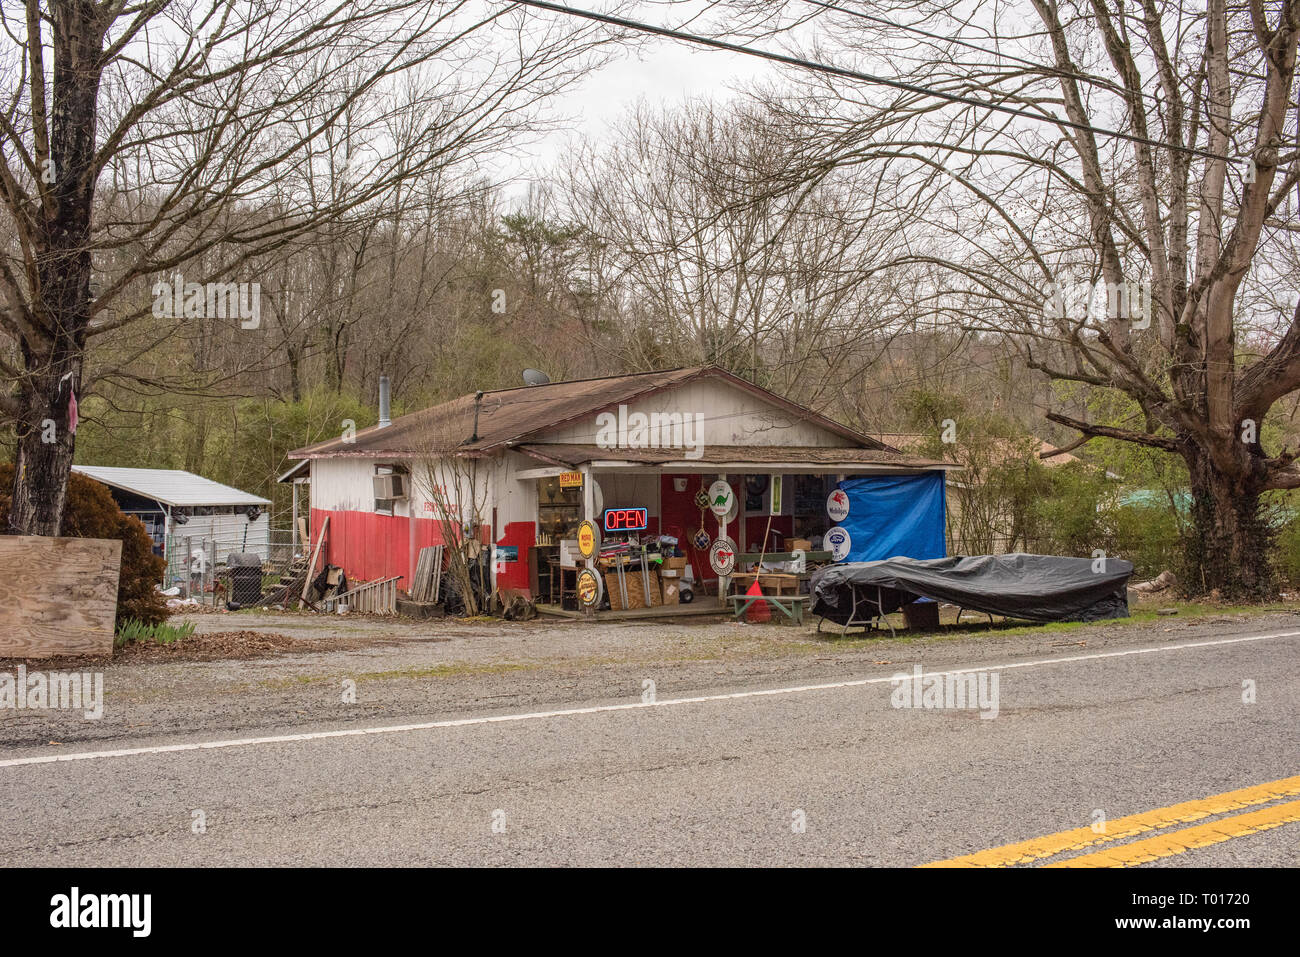 Oliver Springs High Resolution Stock Photography And Images Alamy